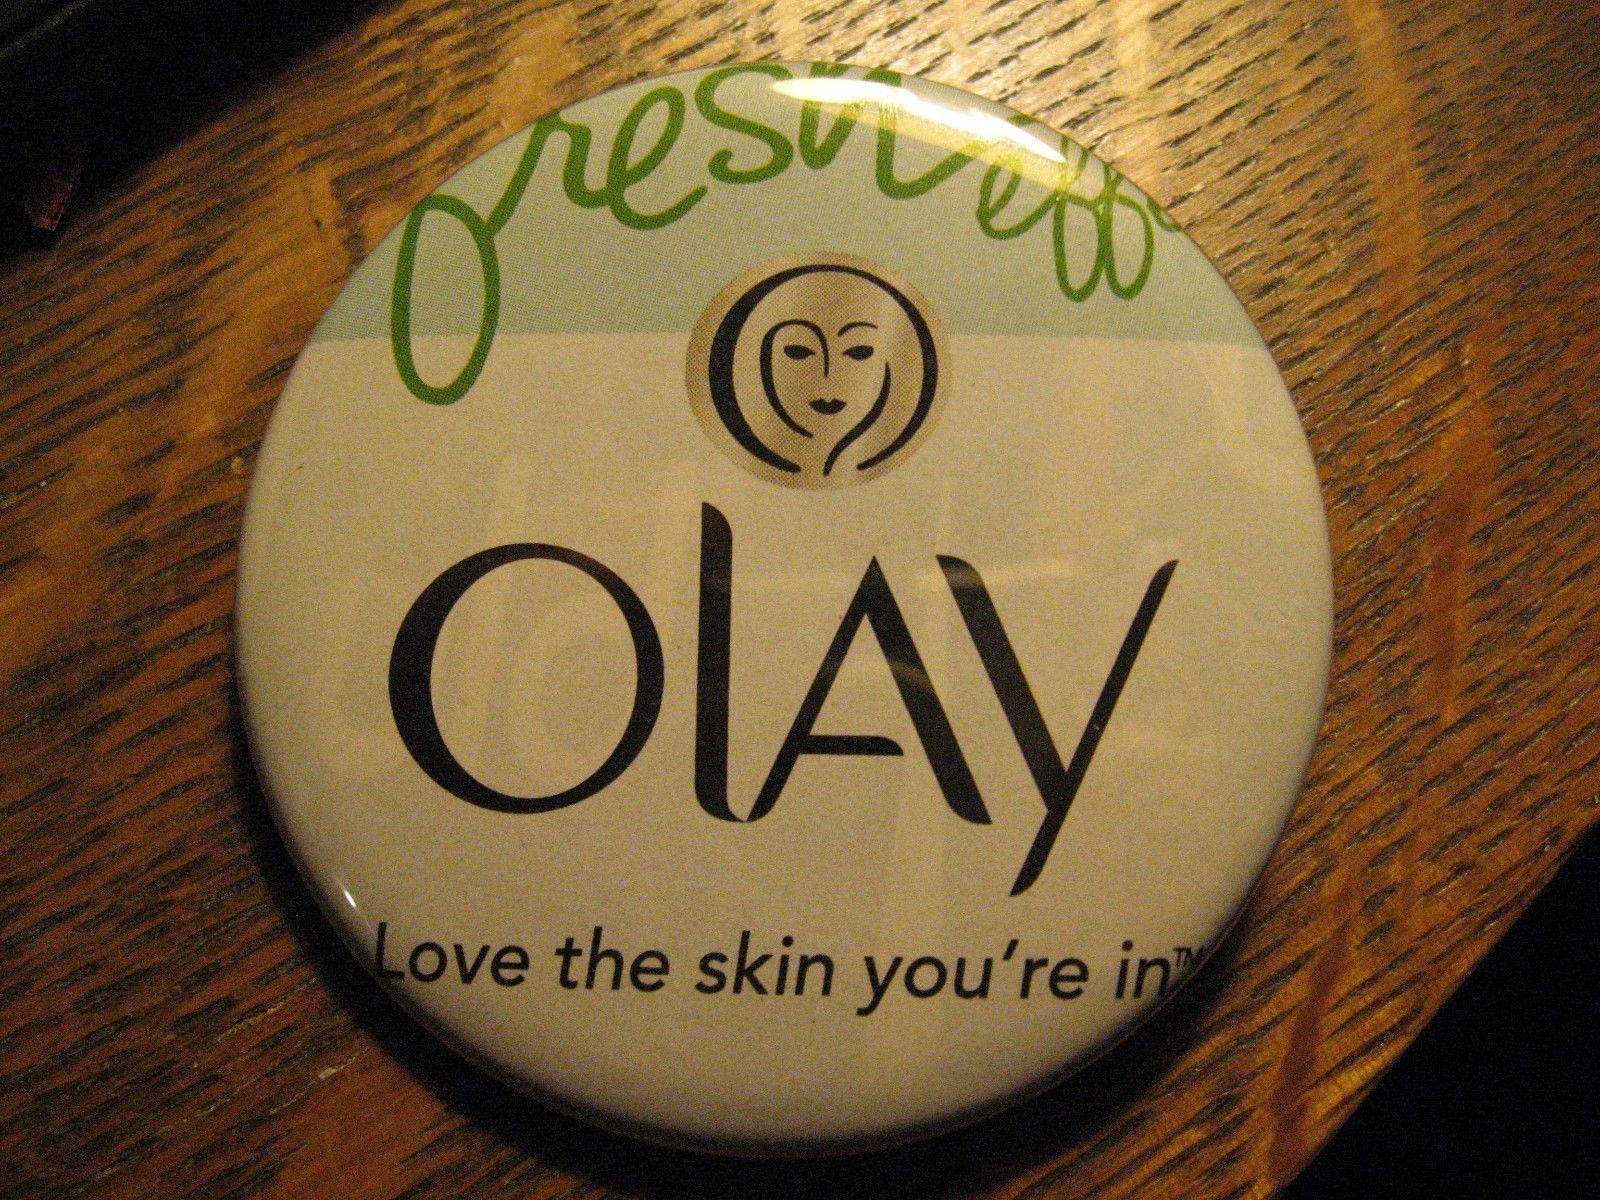 Oil Of Olay Love The Skin You Re In Face Cream Logo Advertisement Pocket Mirror